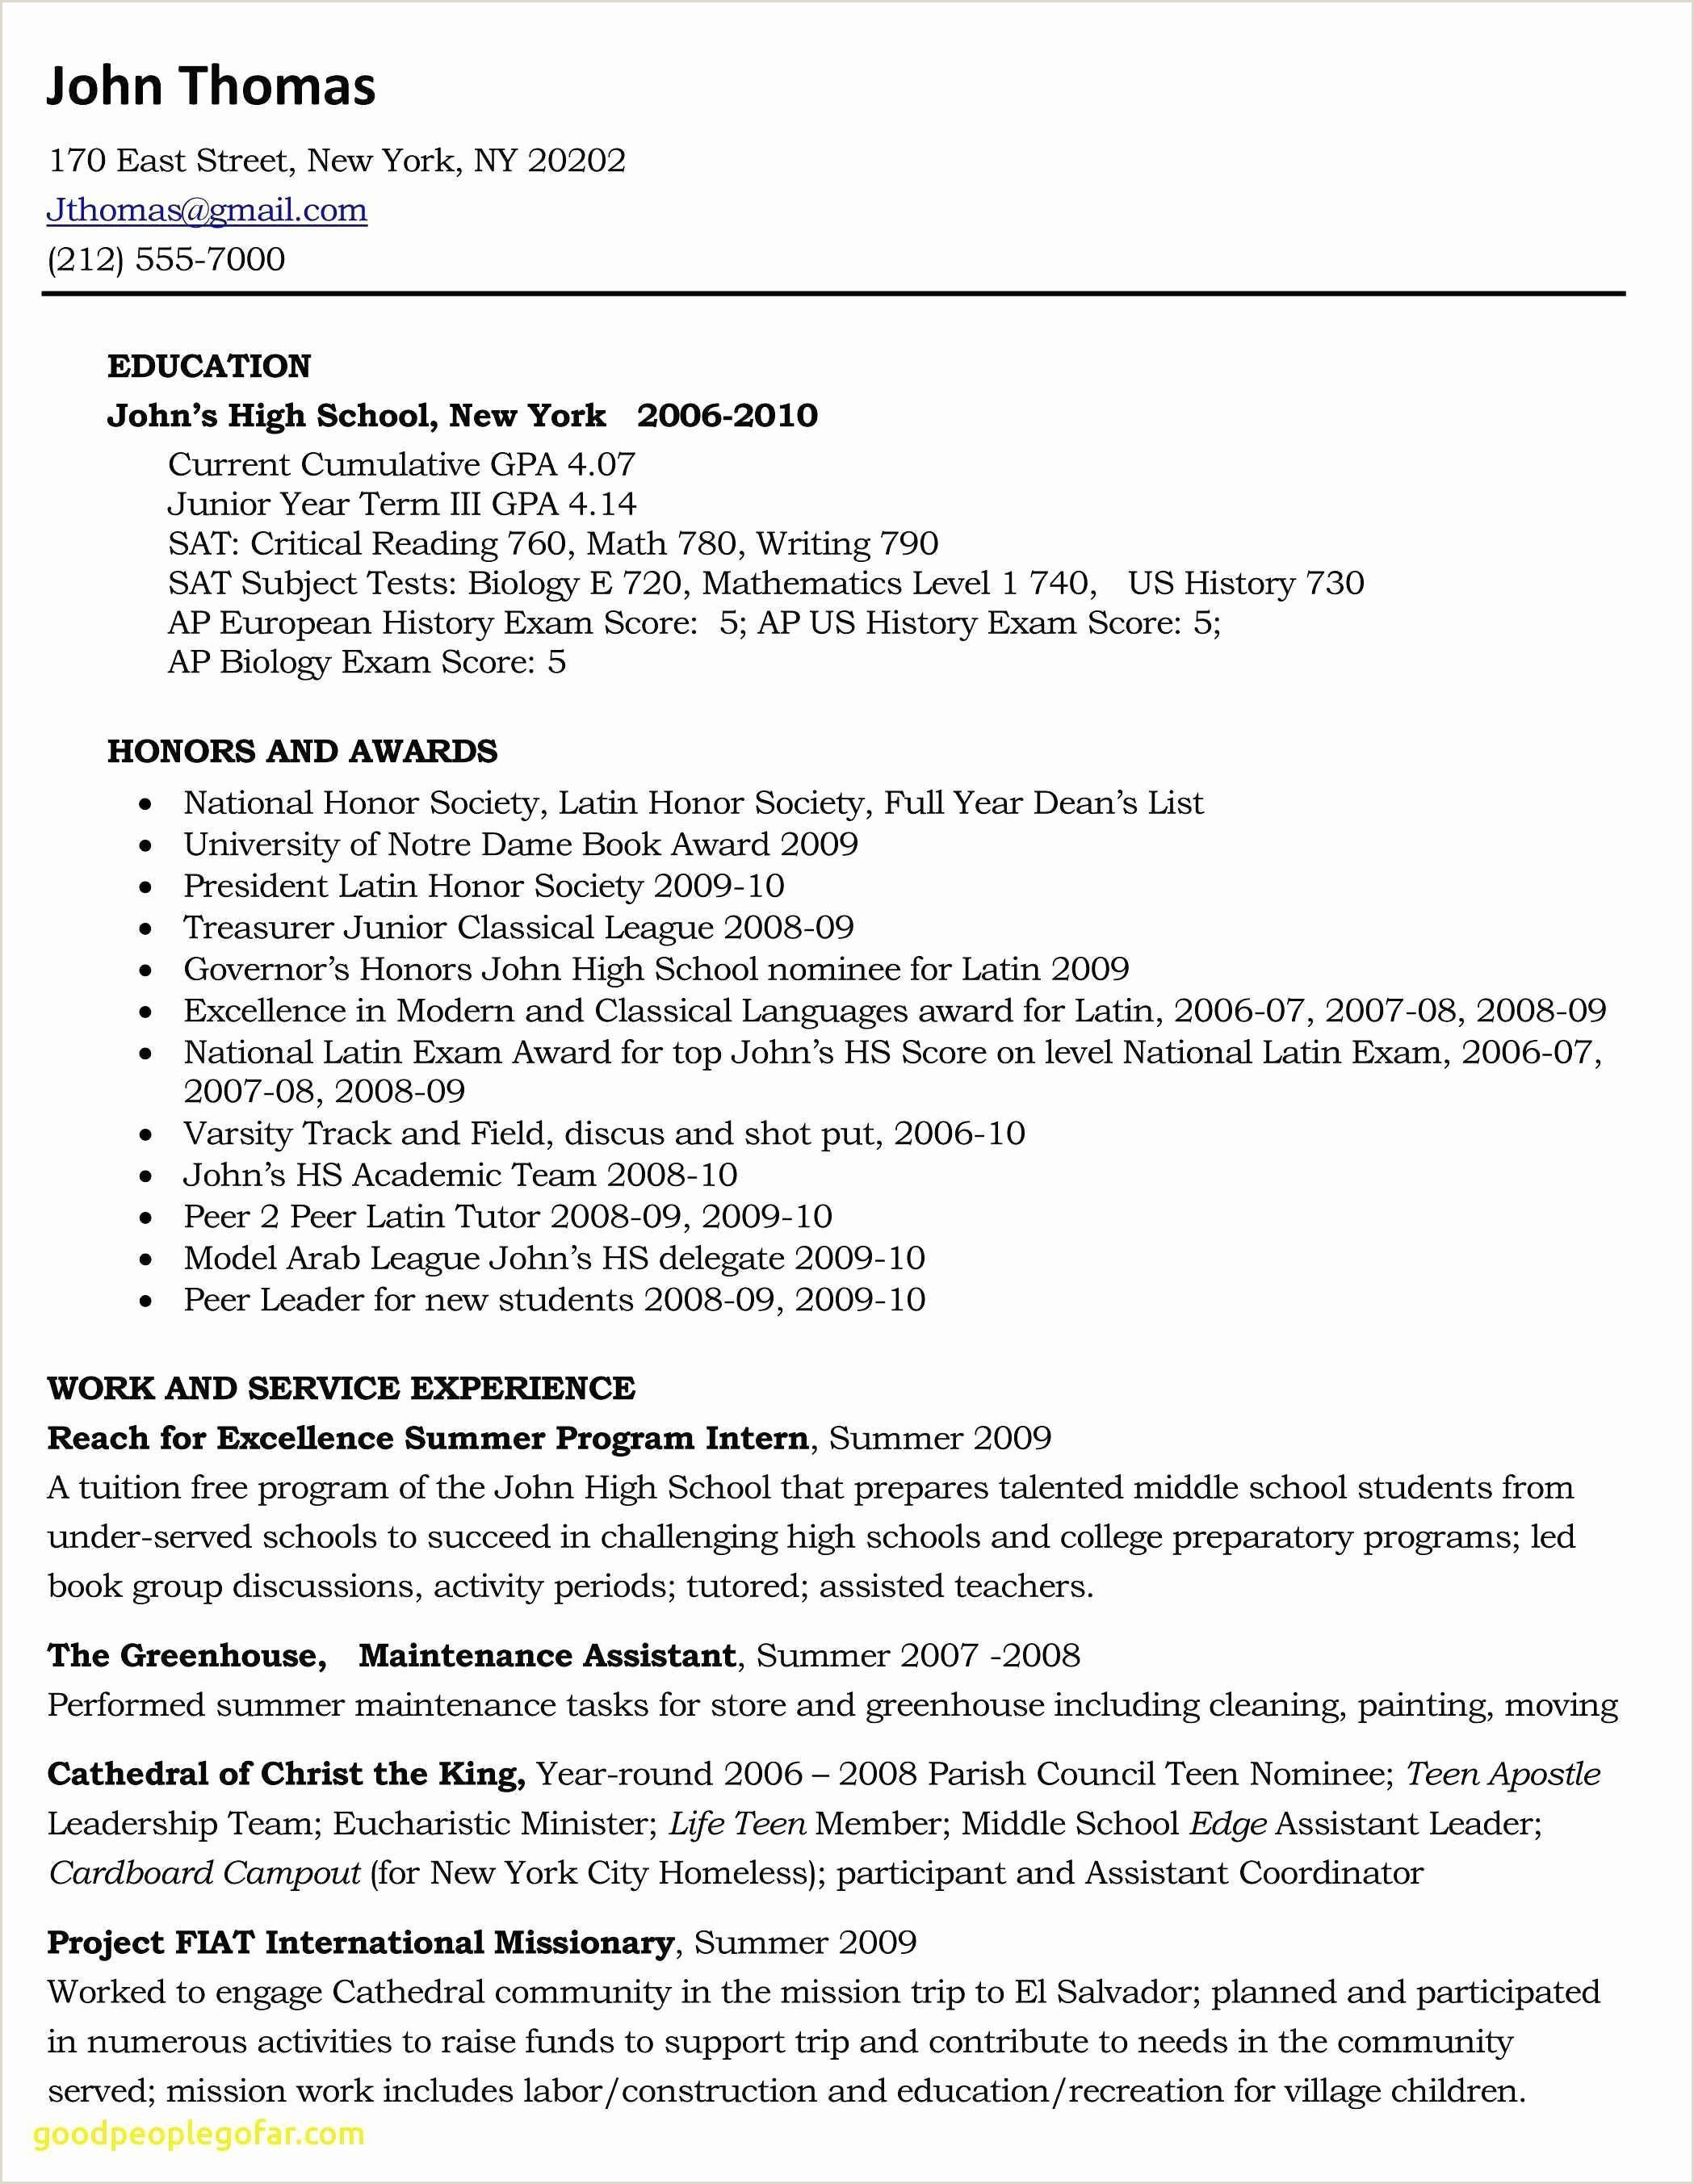 Resume format for Job with Experience Collections De Style Cv Gratuit Iulitte